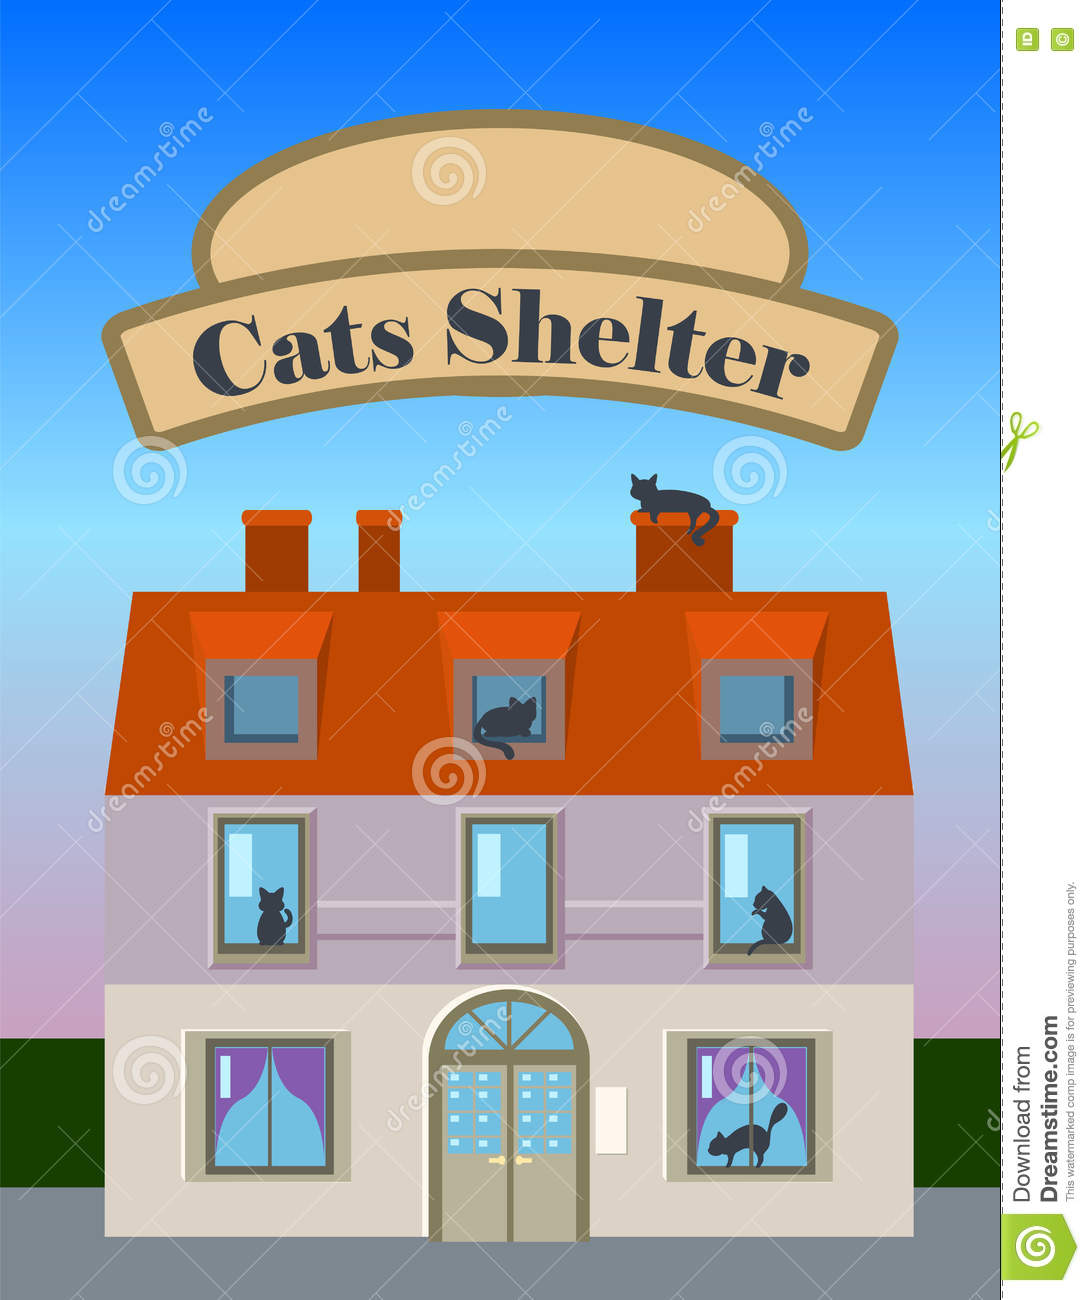 cats shelter house vertical illustration in flat style with banner rh dreamstime com vintage style cat house